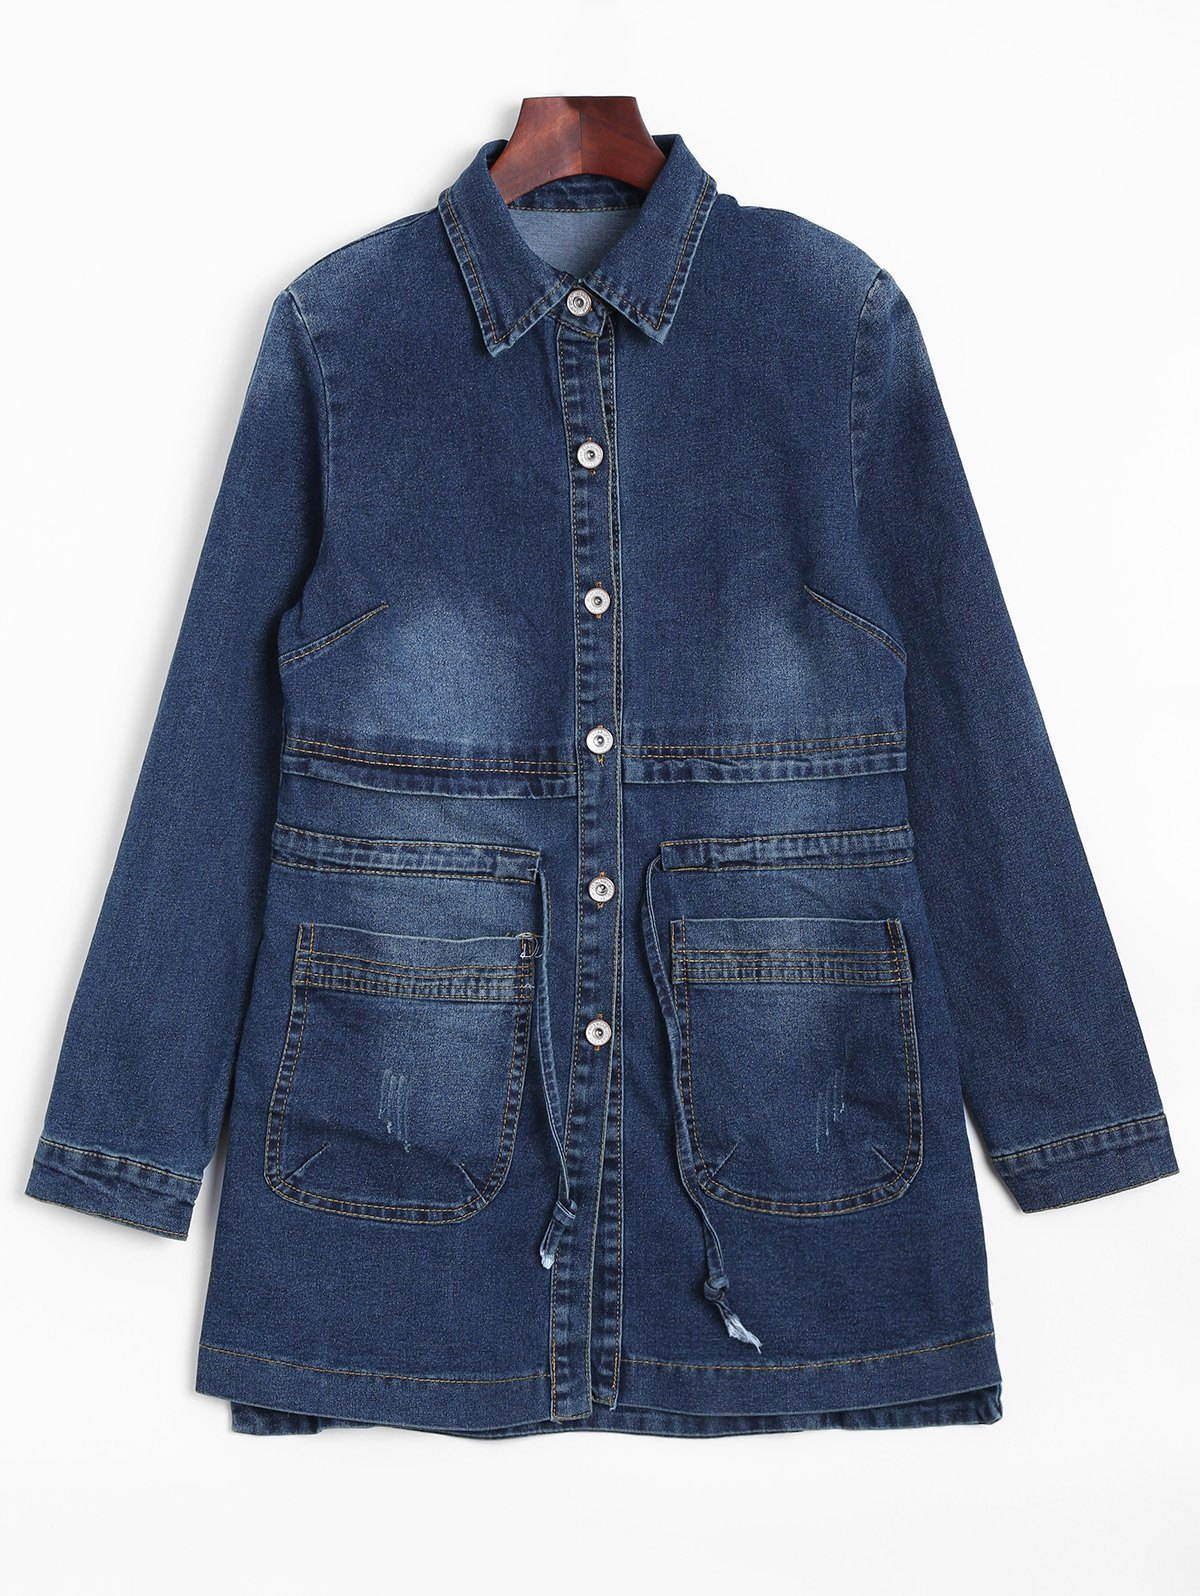 Faded Drawstring Denim Jacket - Bleu Foncé M